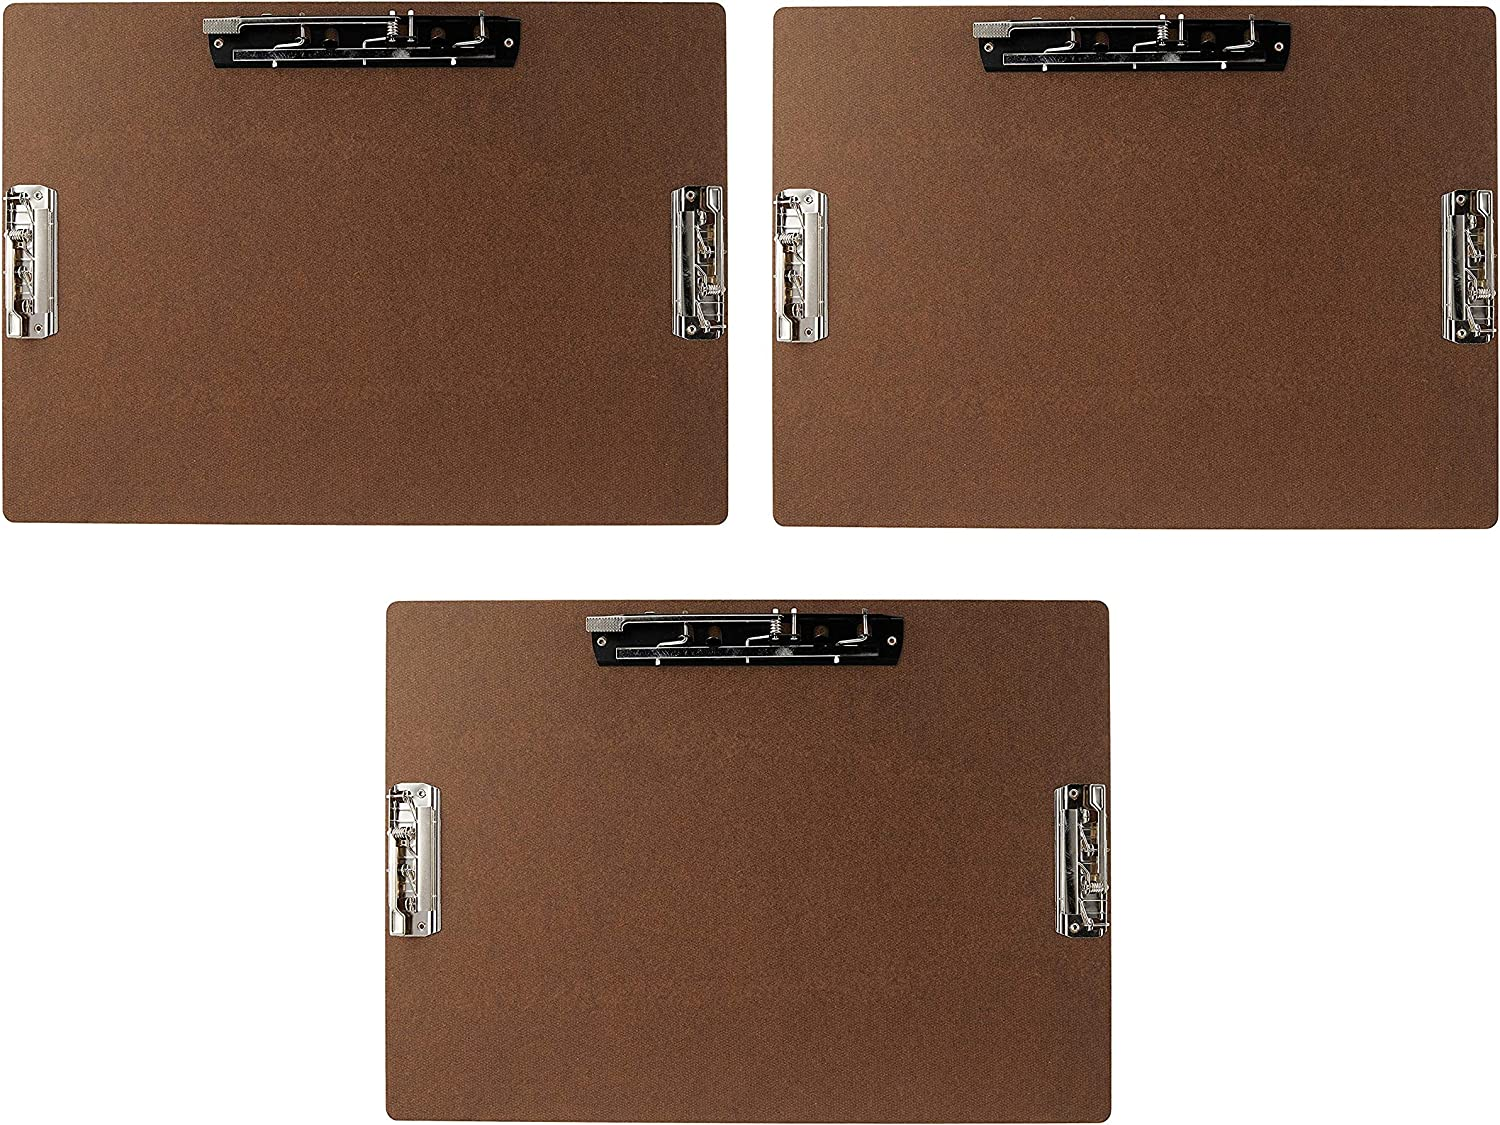 17 x 11 Inches Hardboard Clipboard Outstanding Operated Lever Cl 8-Inch Weekly update with